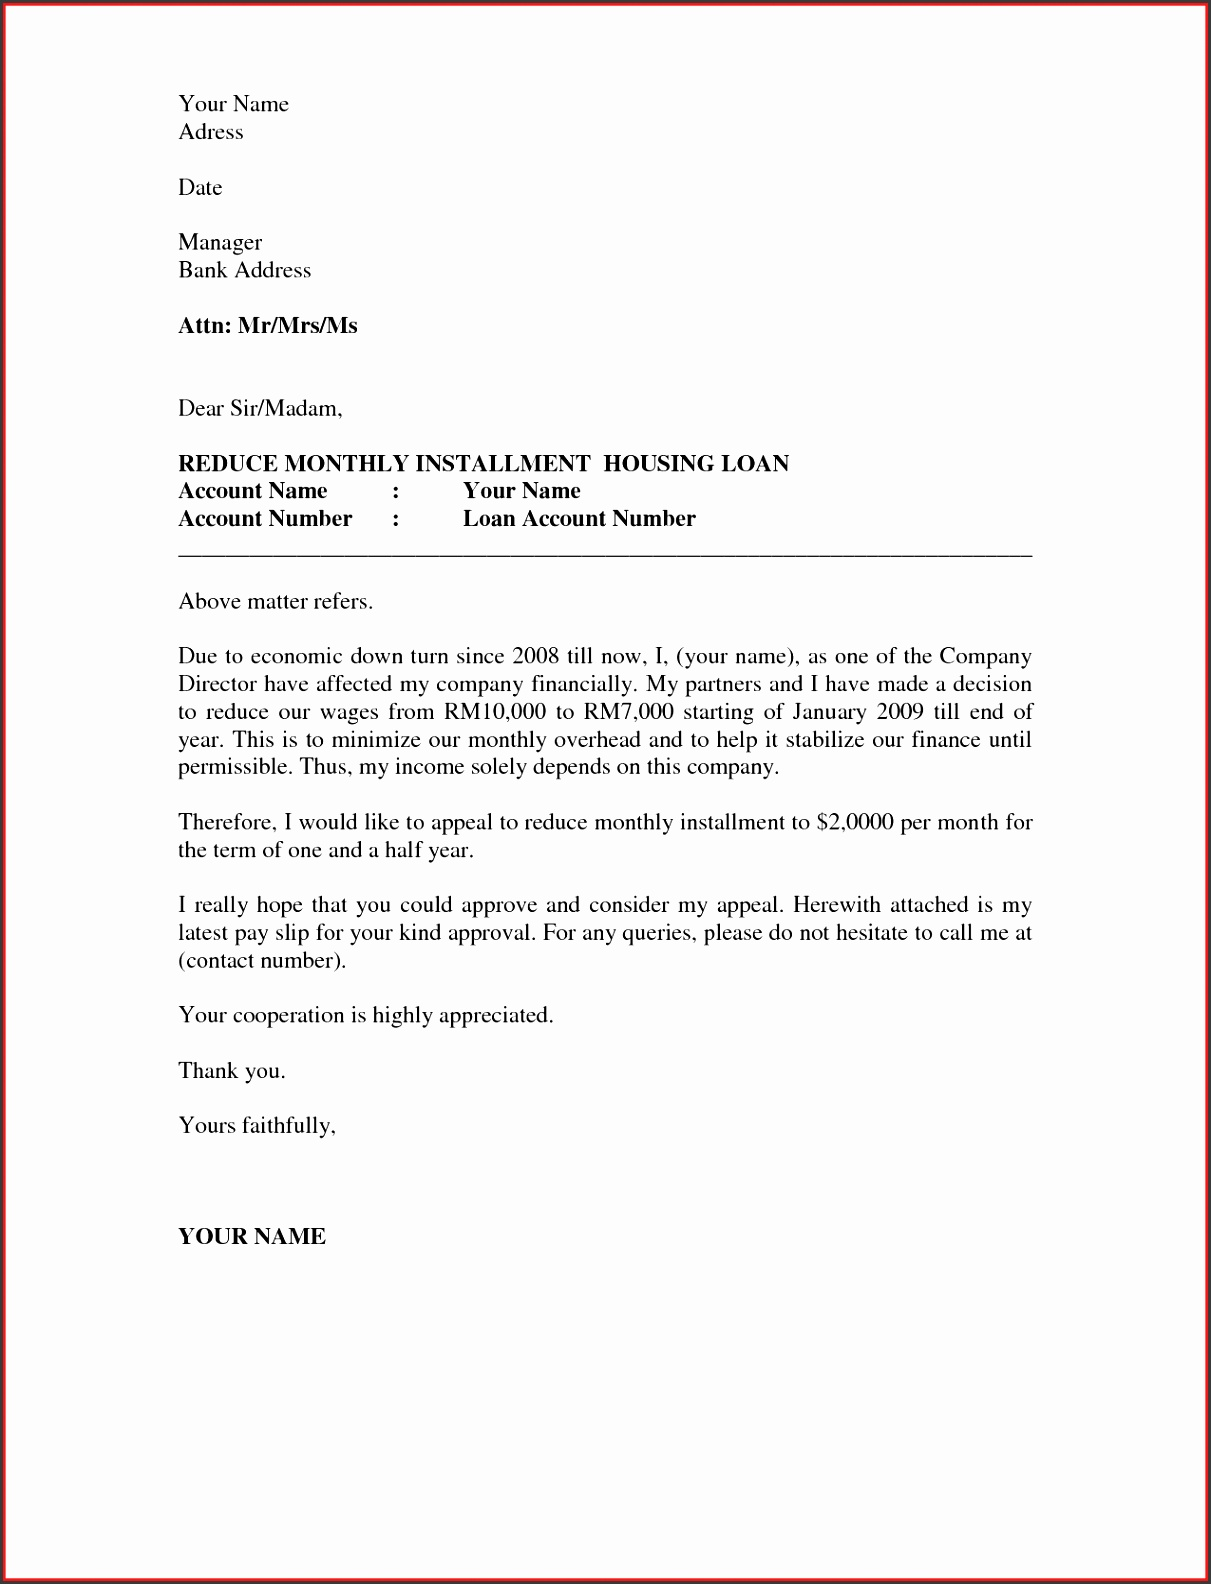 business appeal letter a letter of appeal should be written in a professional business letter